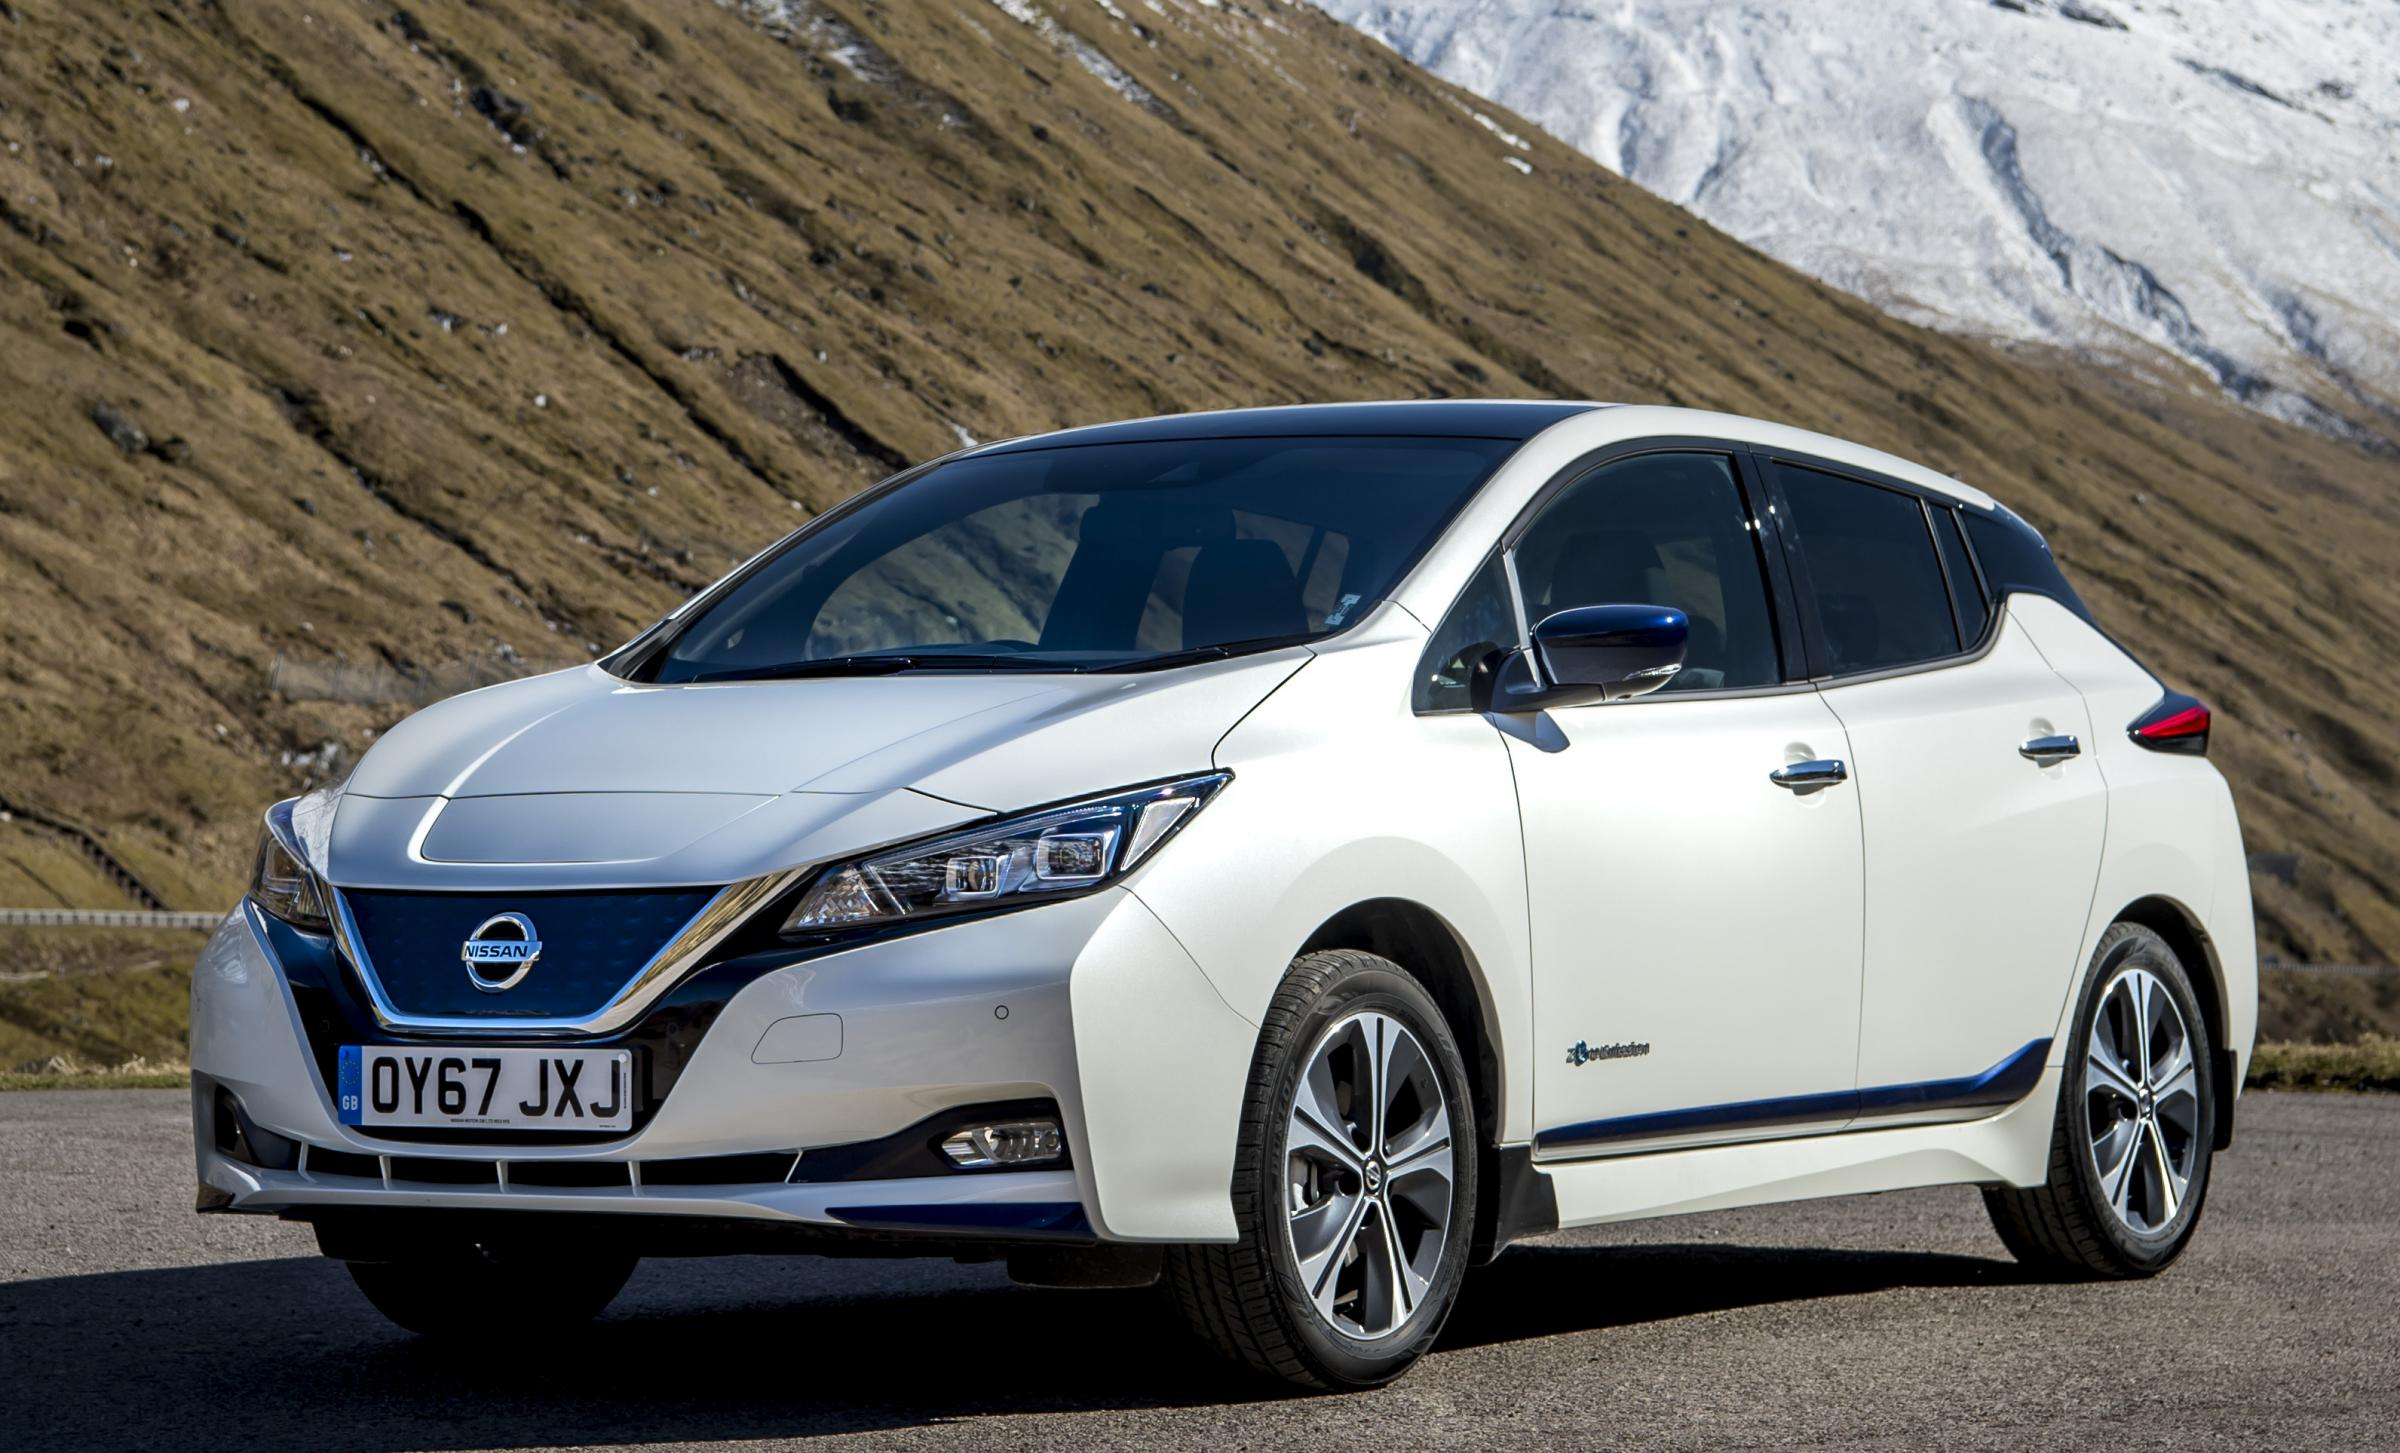 The new Nissan LEAF. The model is the world's best-selling electric vehicle